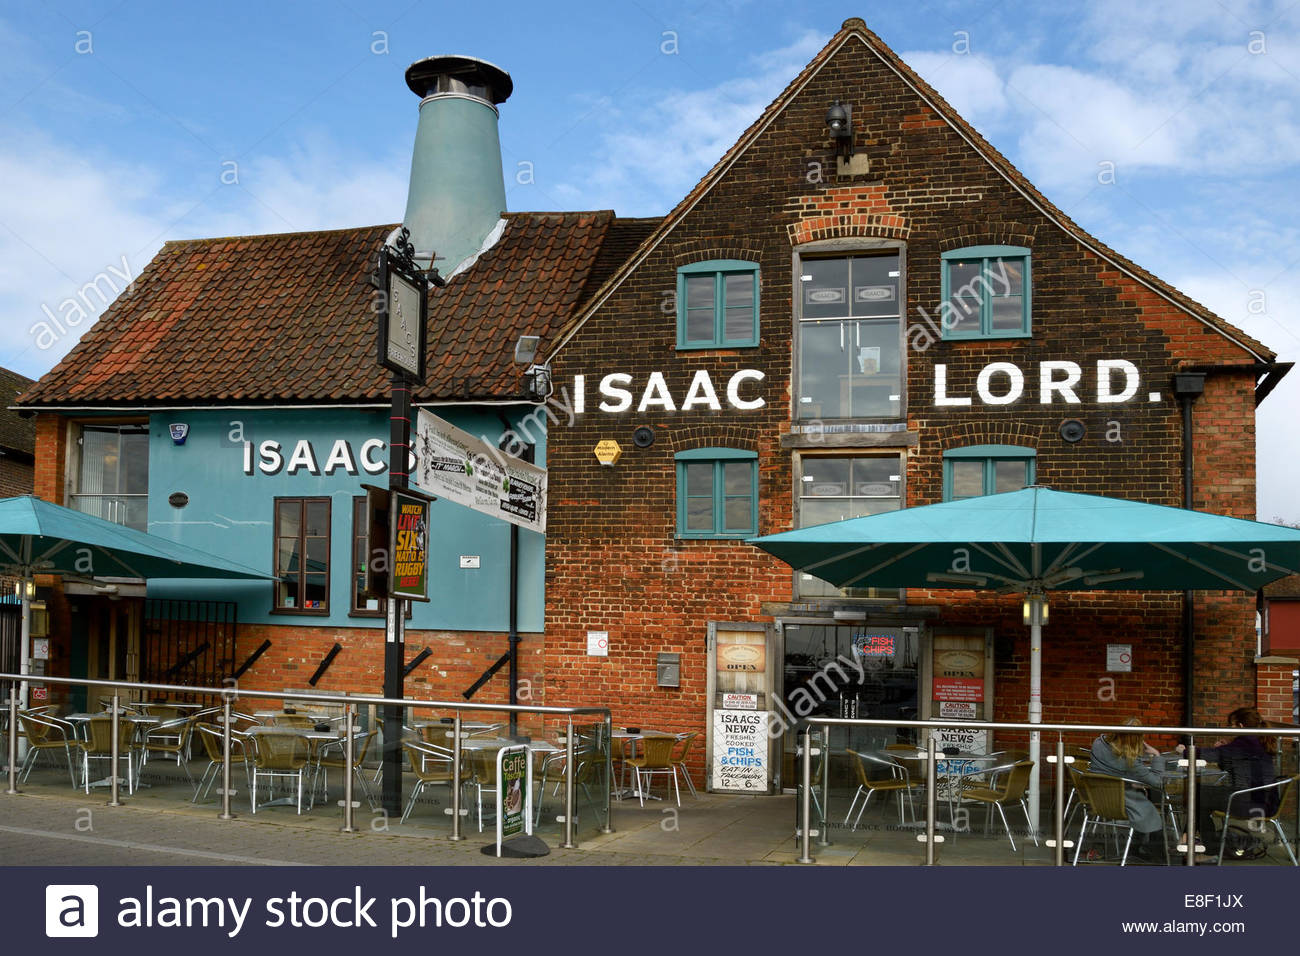 Isaac Lord pub, Wherry Quay, Ipswich, Suffolk, England,UK - Stock Image